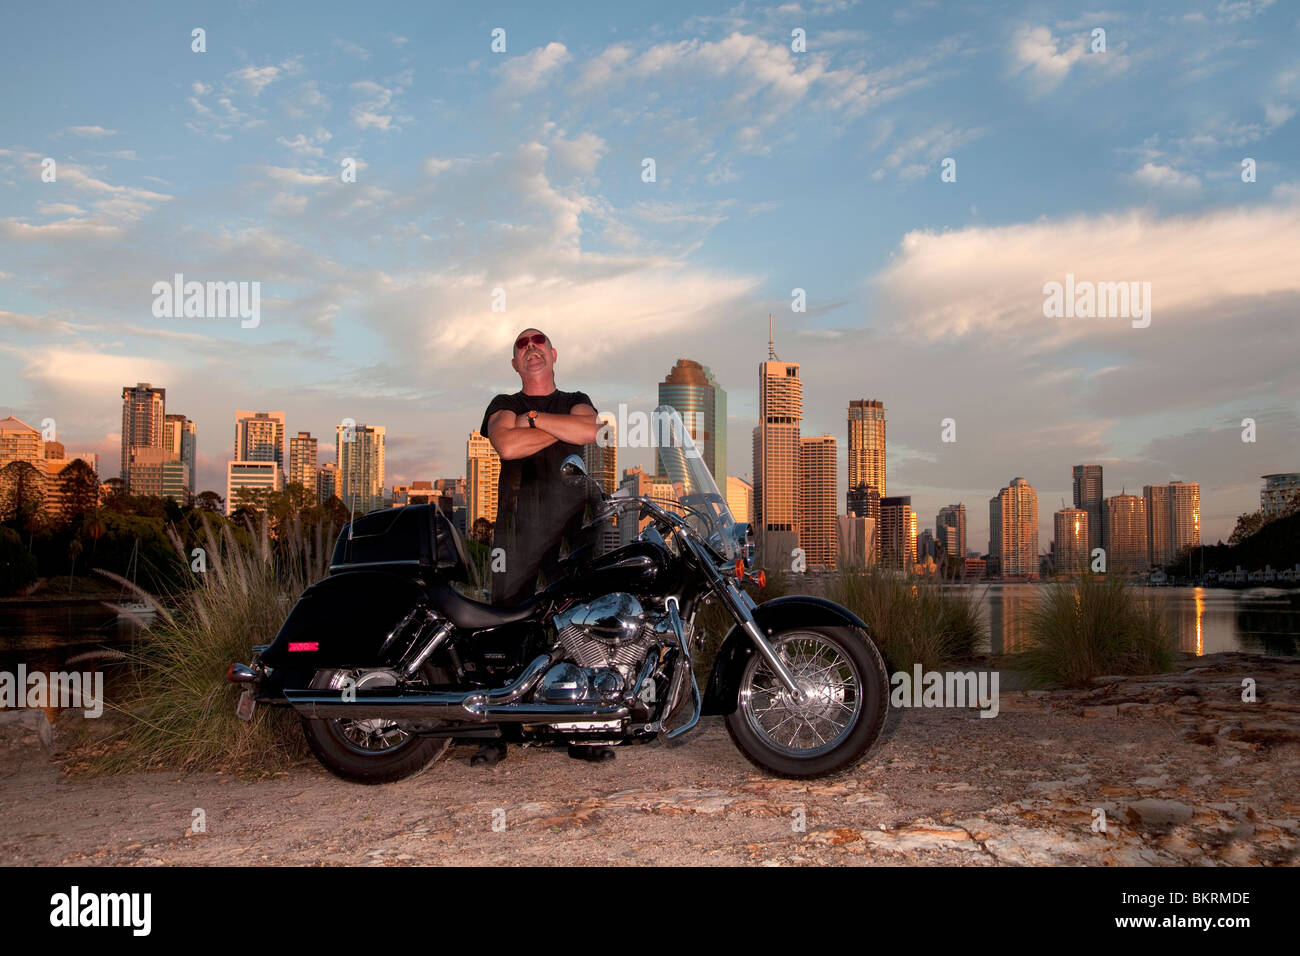 Bike rider with city background stock photo 29409786 alamy bike rider with city background voltagebd Image collections